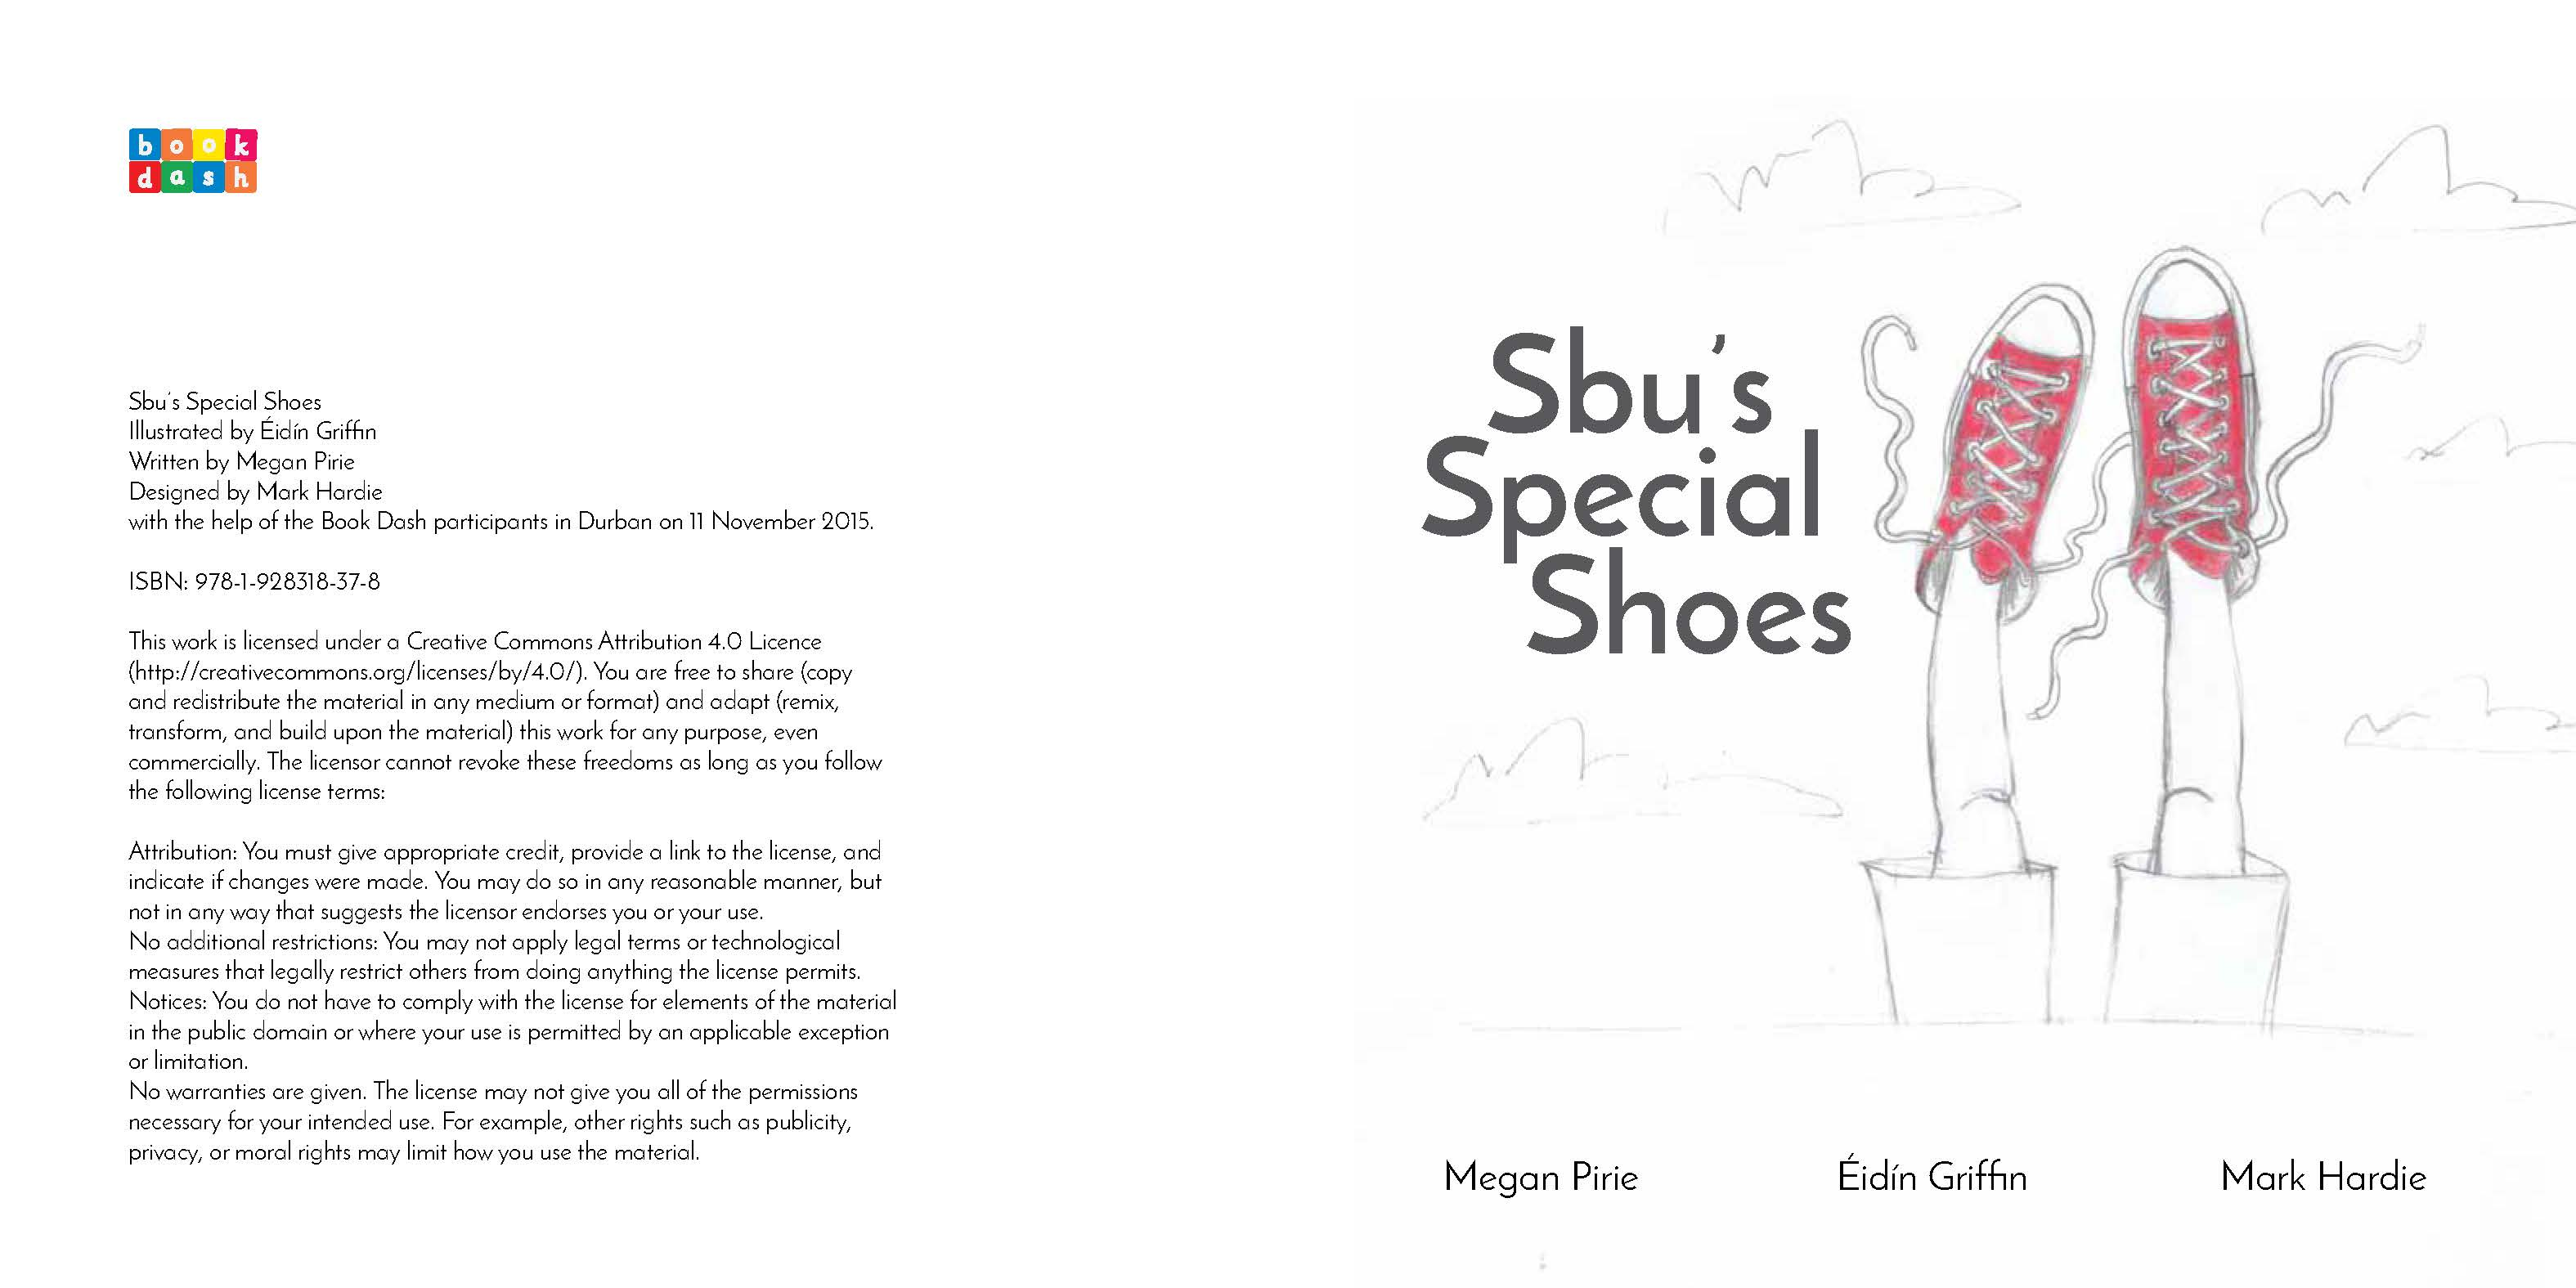 Sbu's Special Shoes by Éidín Griffin, Mark Hardie and